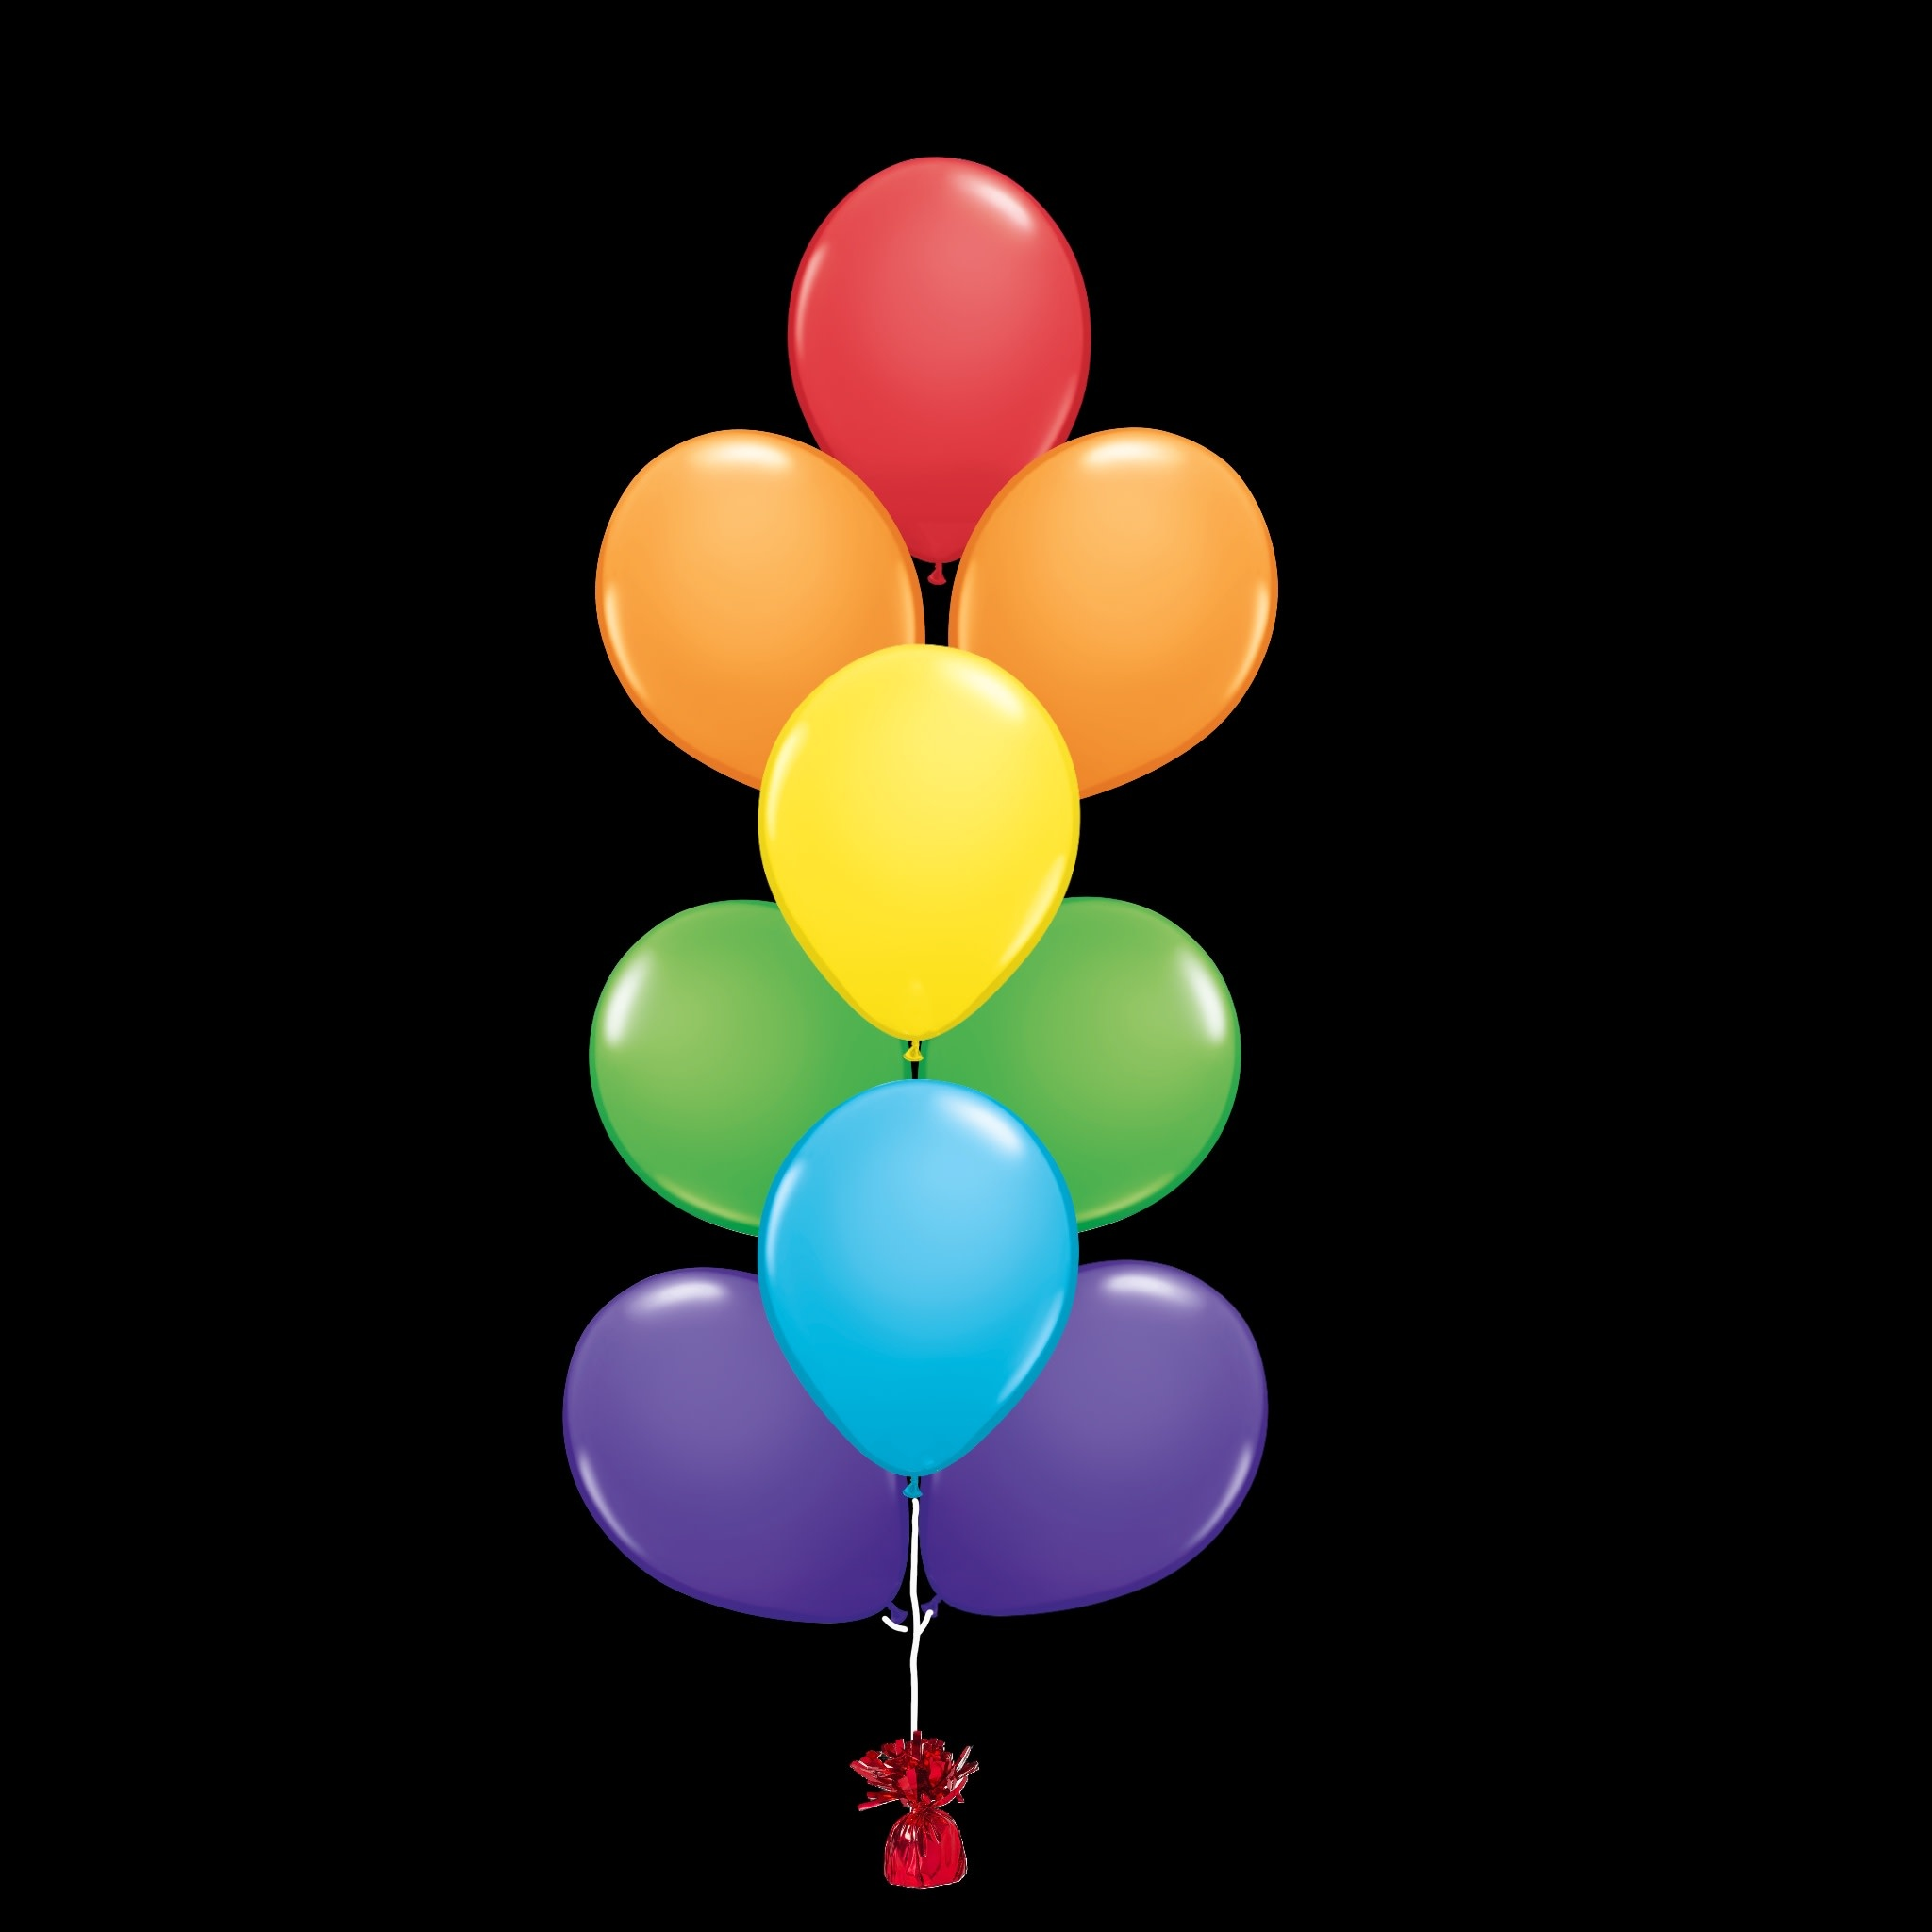 19 Balloons to a Weight Treated